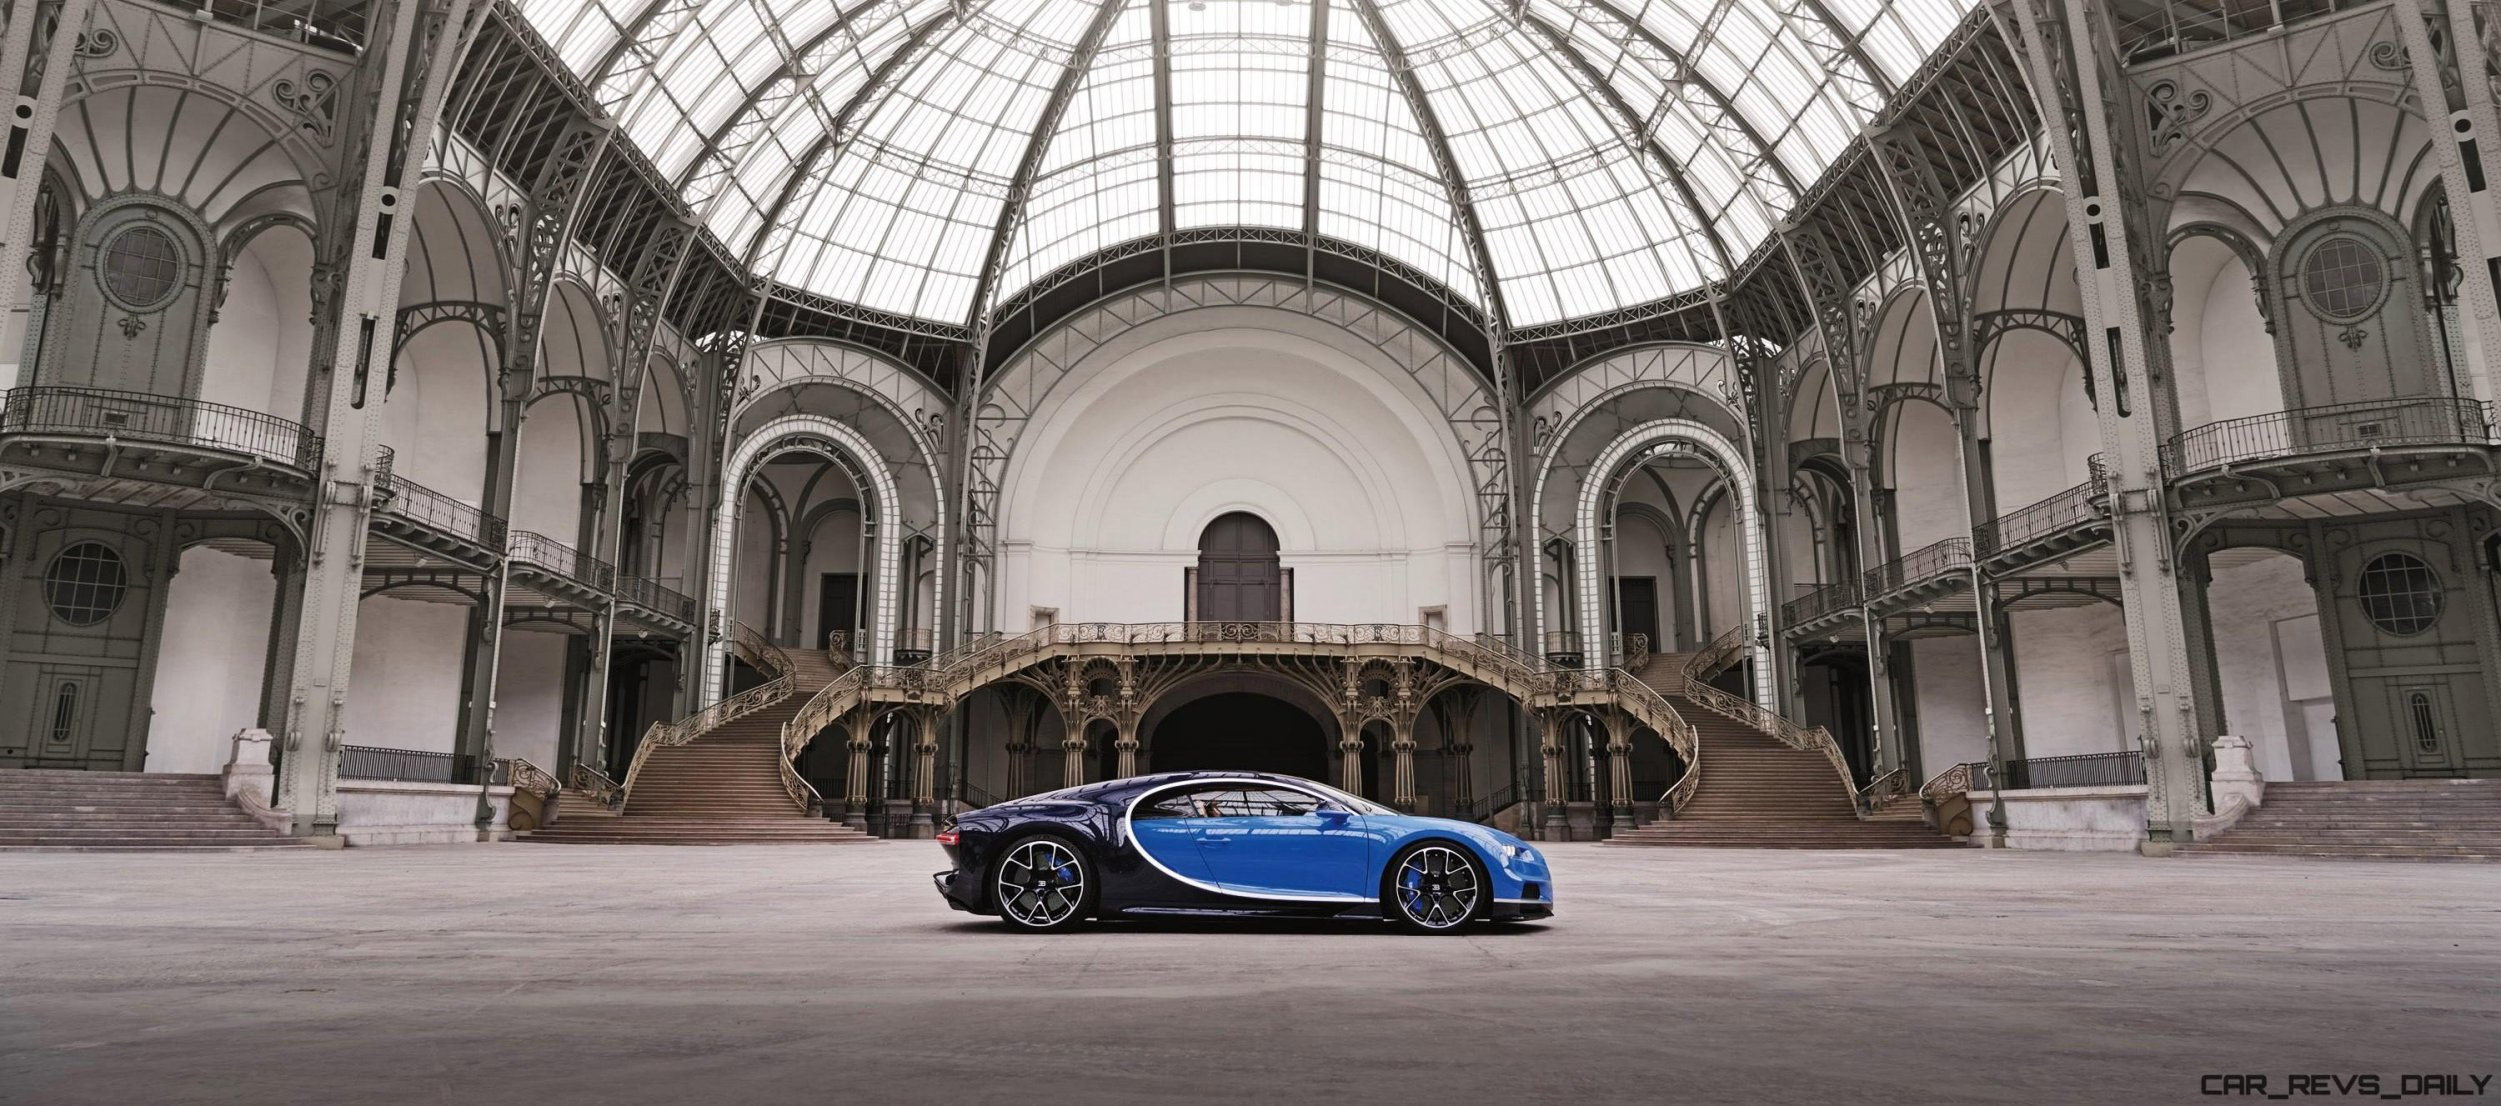 2017 bugatti chiron dynamic onyx grand palais photosets car revs. Black Bedroom Furniture Sets. Home Design Ideas